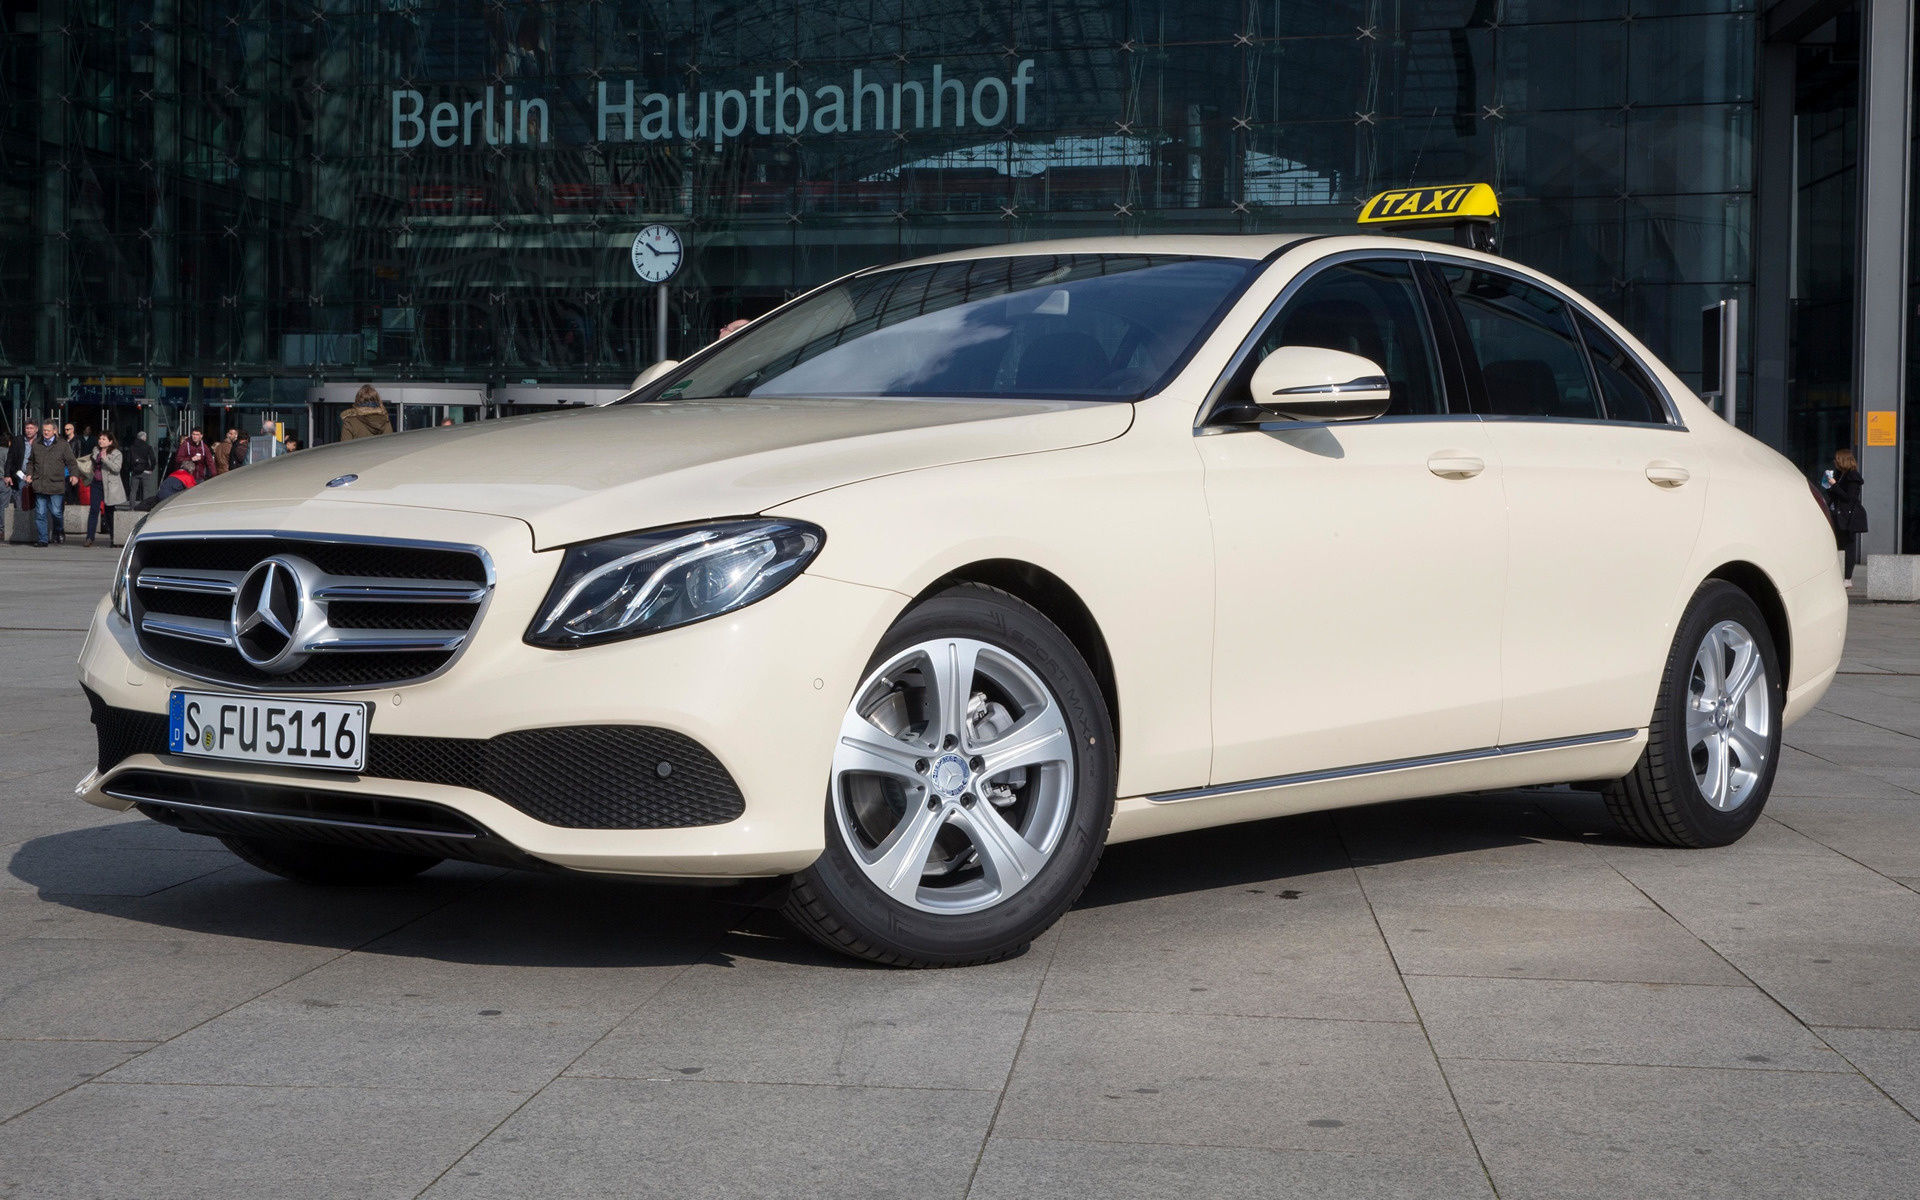 2017 Mercedes Benz C Class >> 2016 Mercedes-Benz E-Class Taxi - Wallpapers and HD Images ...